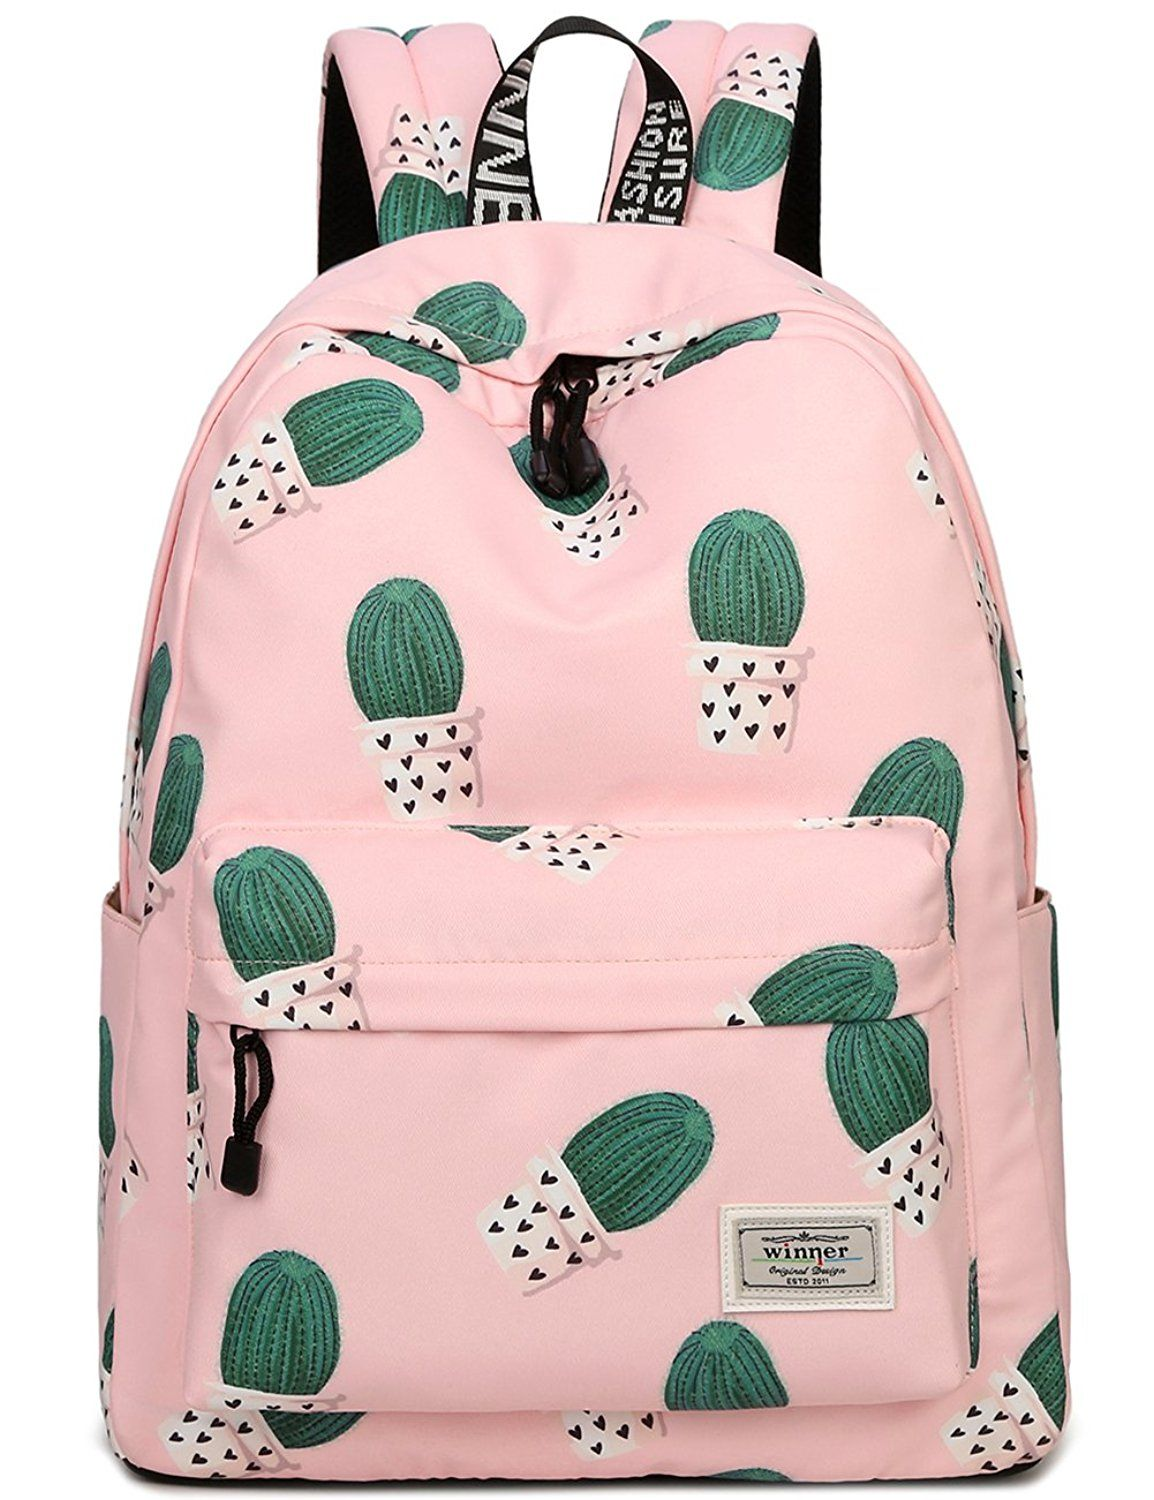 1e0c6ce474b3 29 Cute Backpacks For School 2018 - Best Cool and Trendy Book Bags